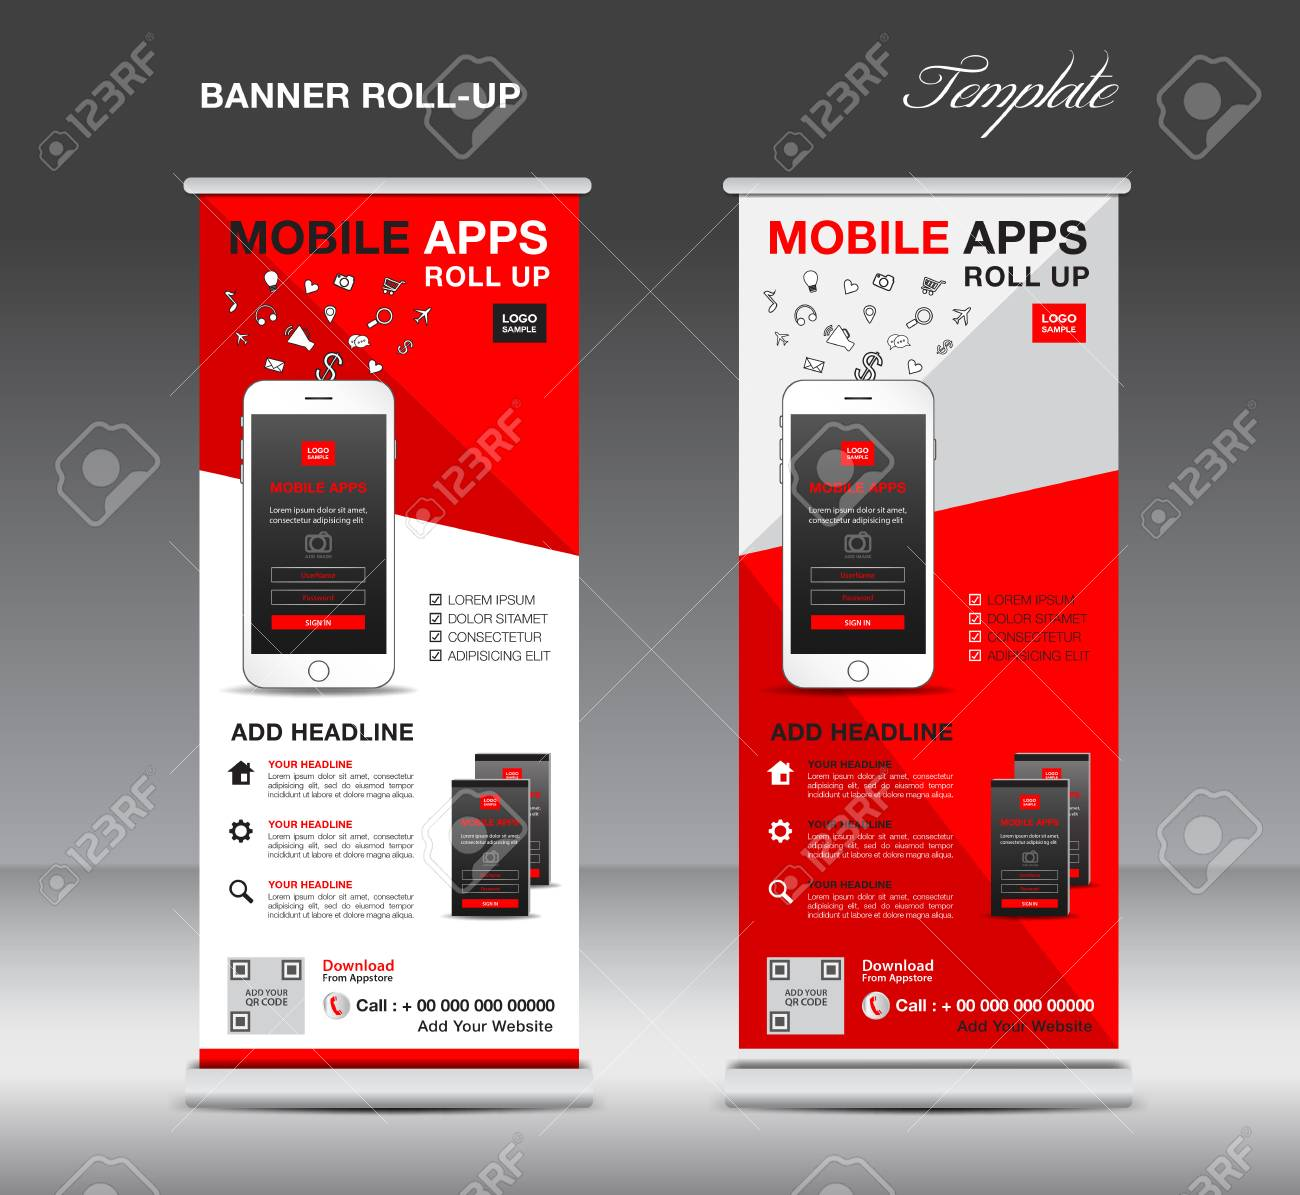 MOBILE APPS Roll Up Banner Template, Stand Layout, Red Banner ...